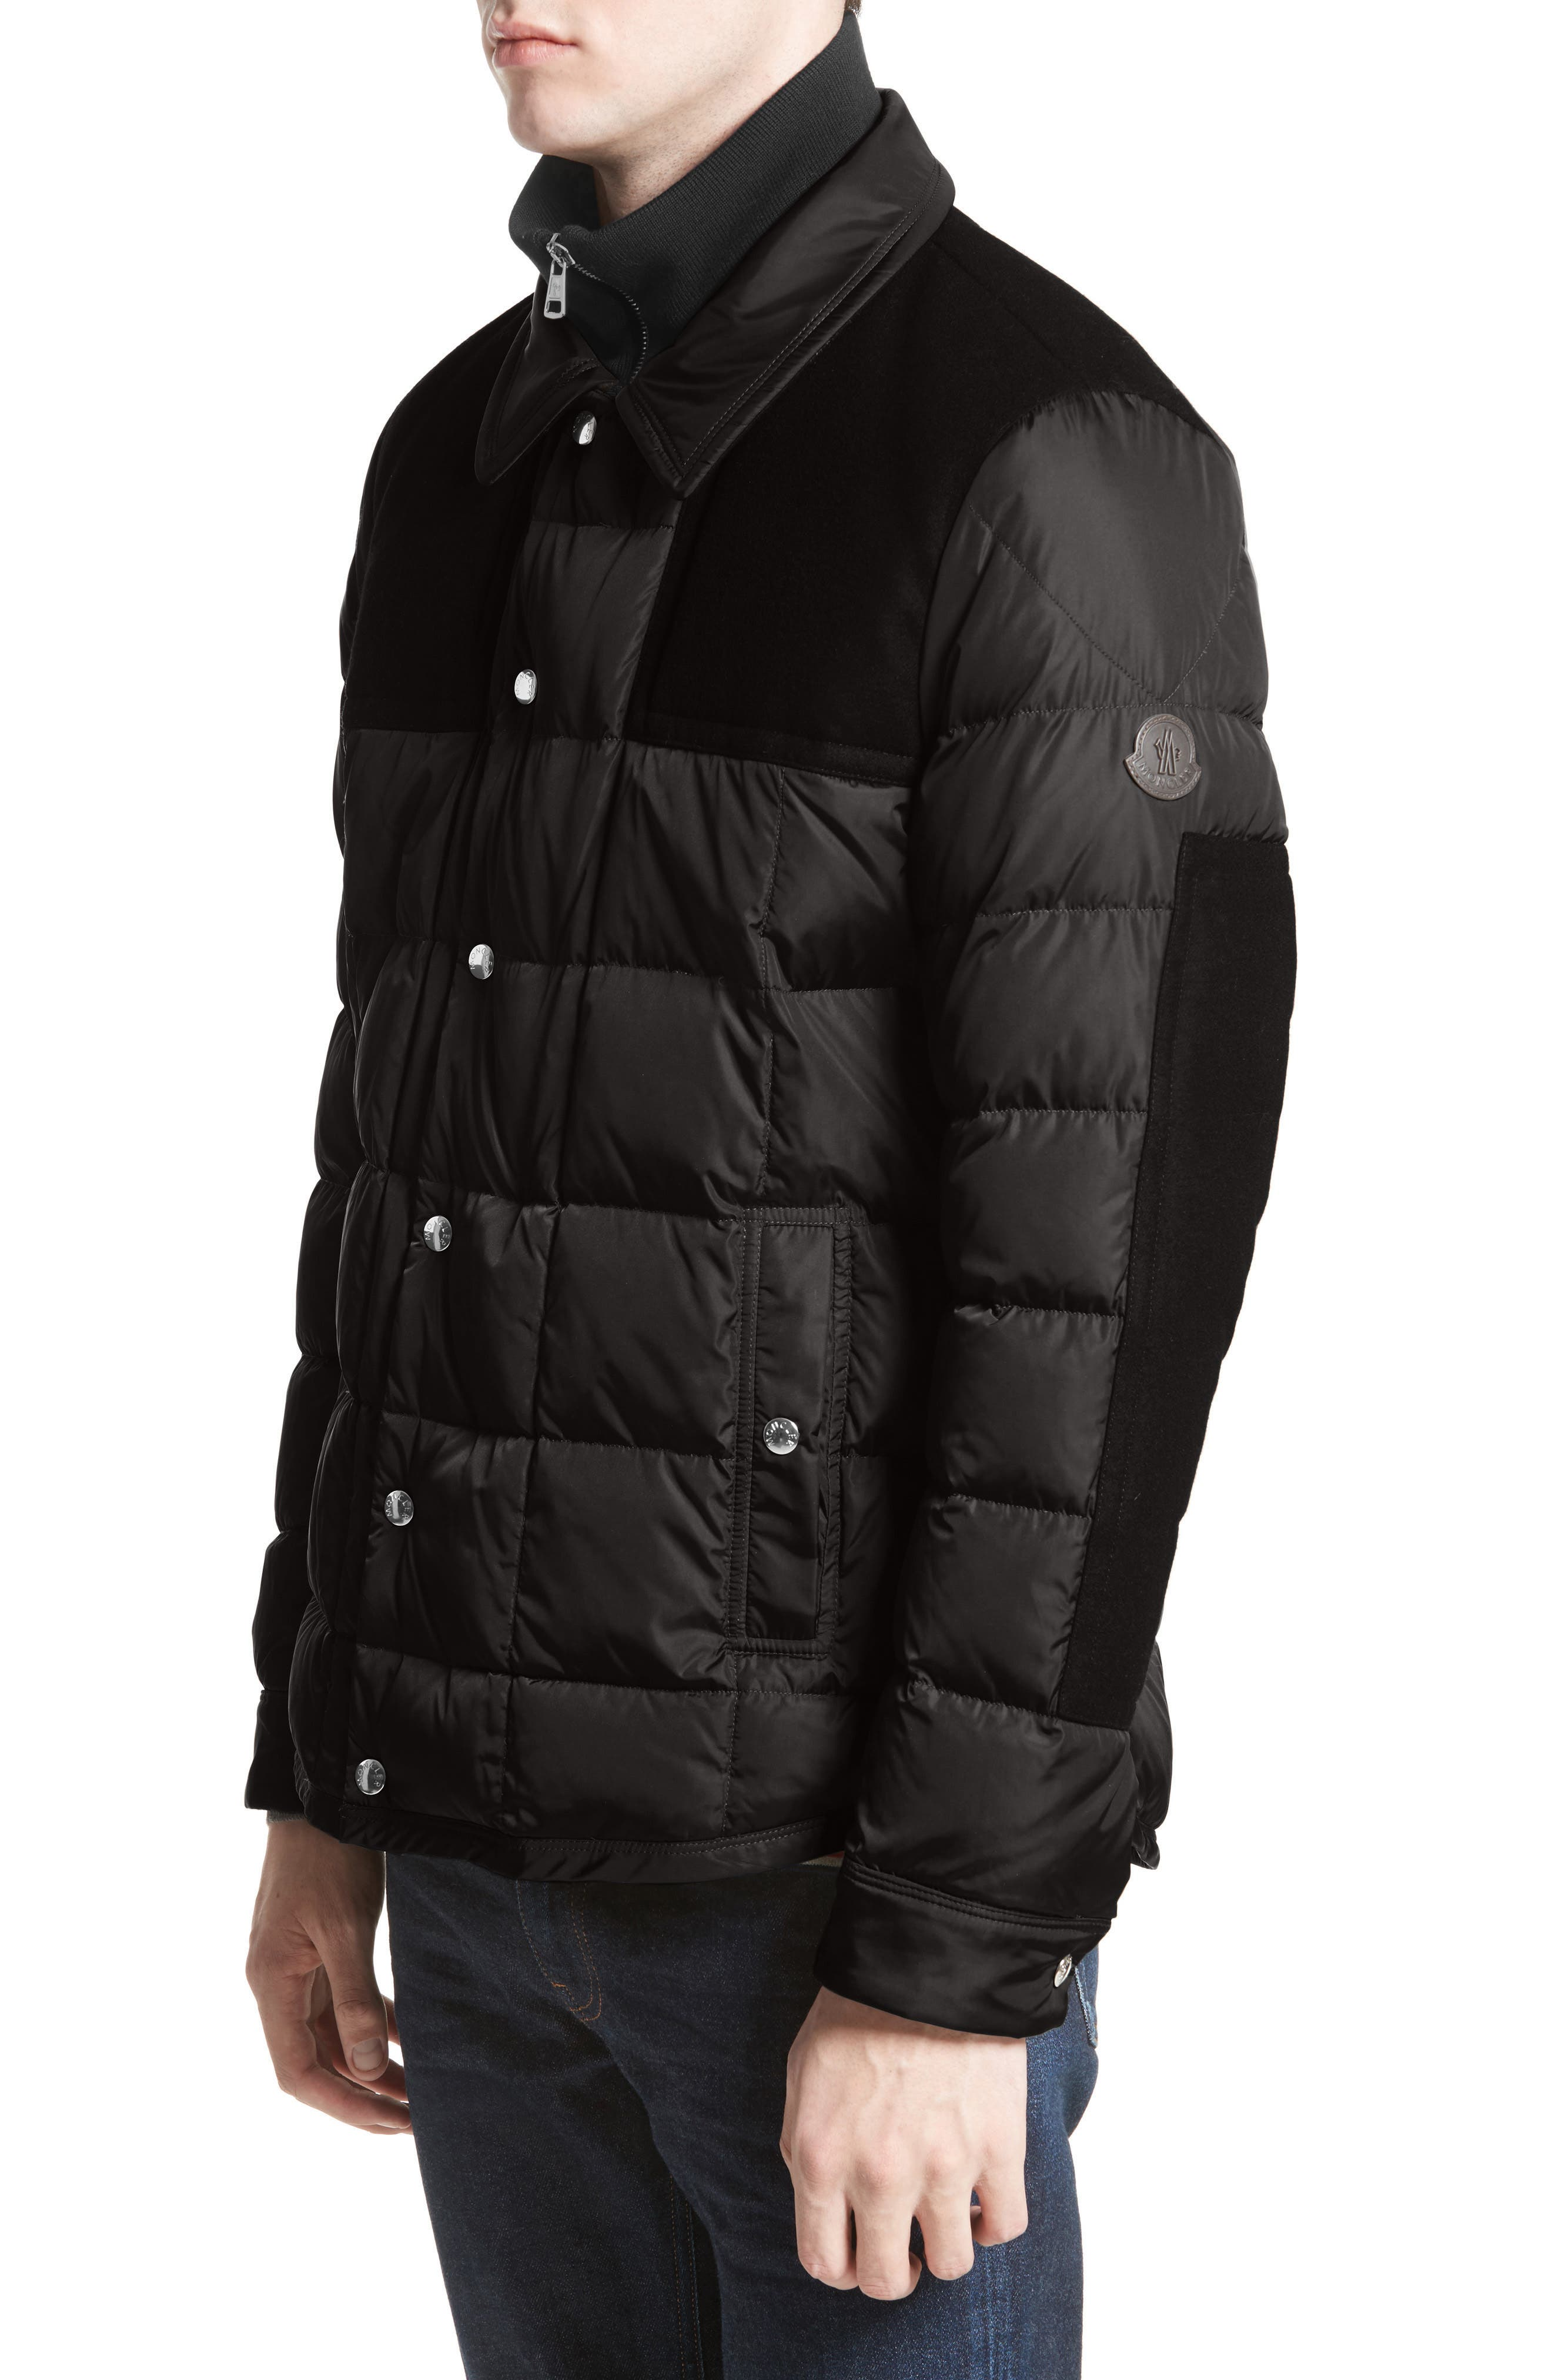 Clovis Mixed Media Quilted Down Jacket,                         Main,                         color, Black